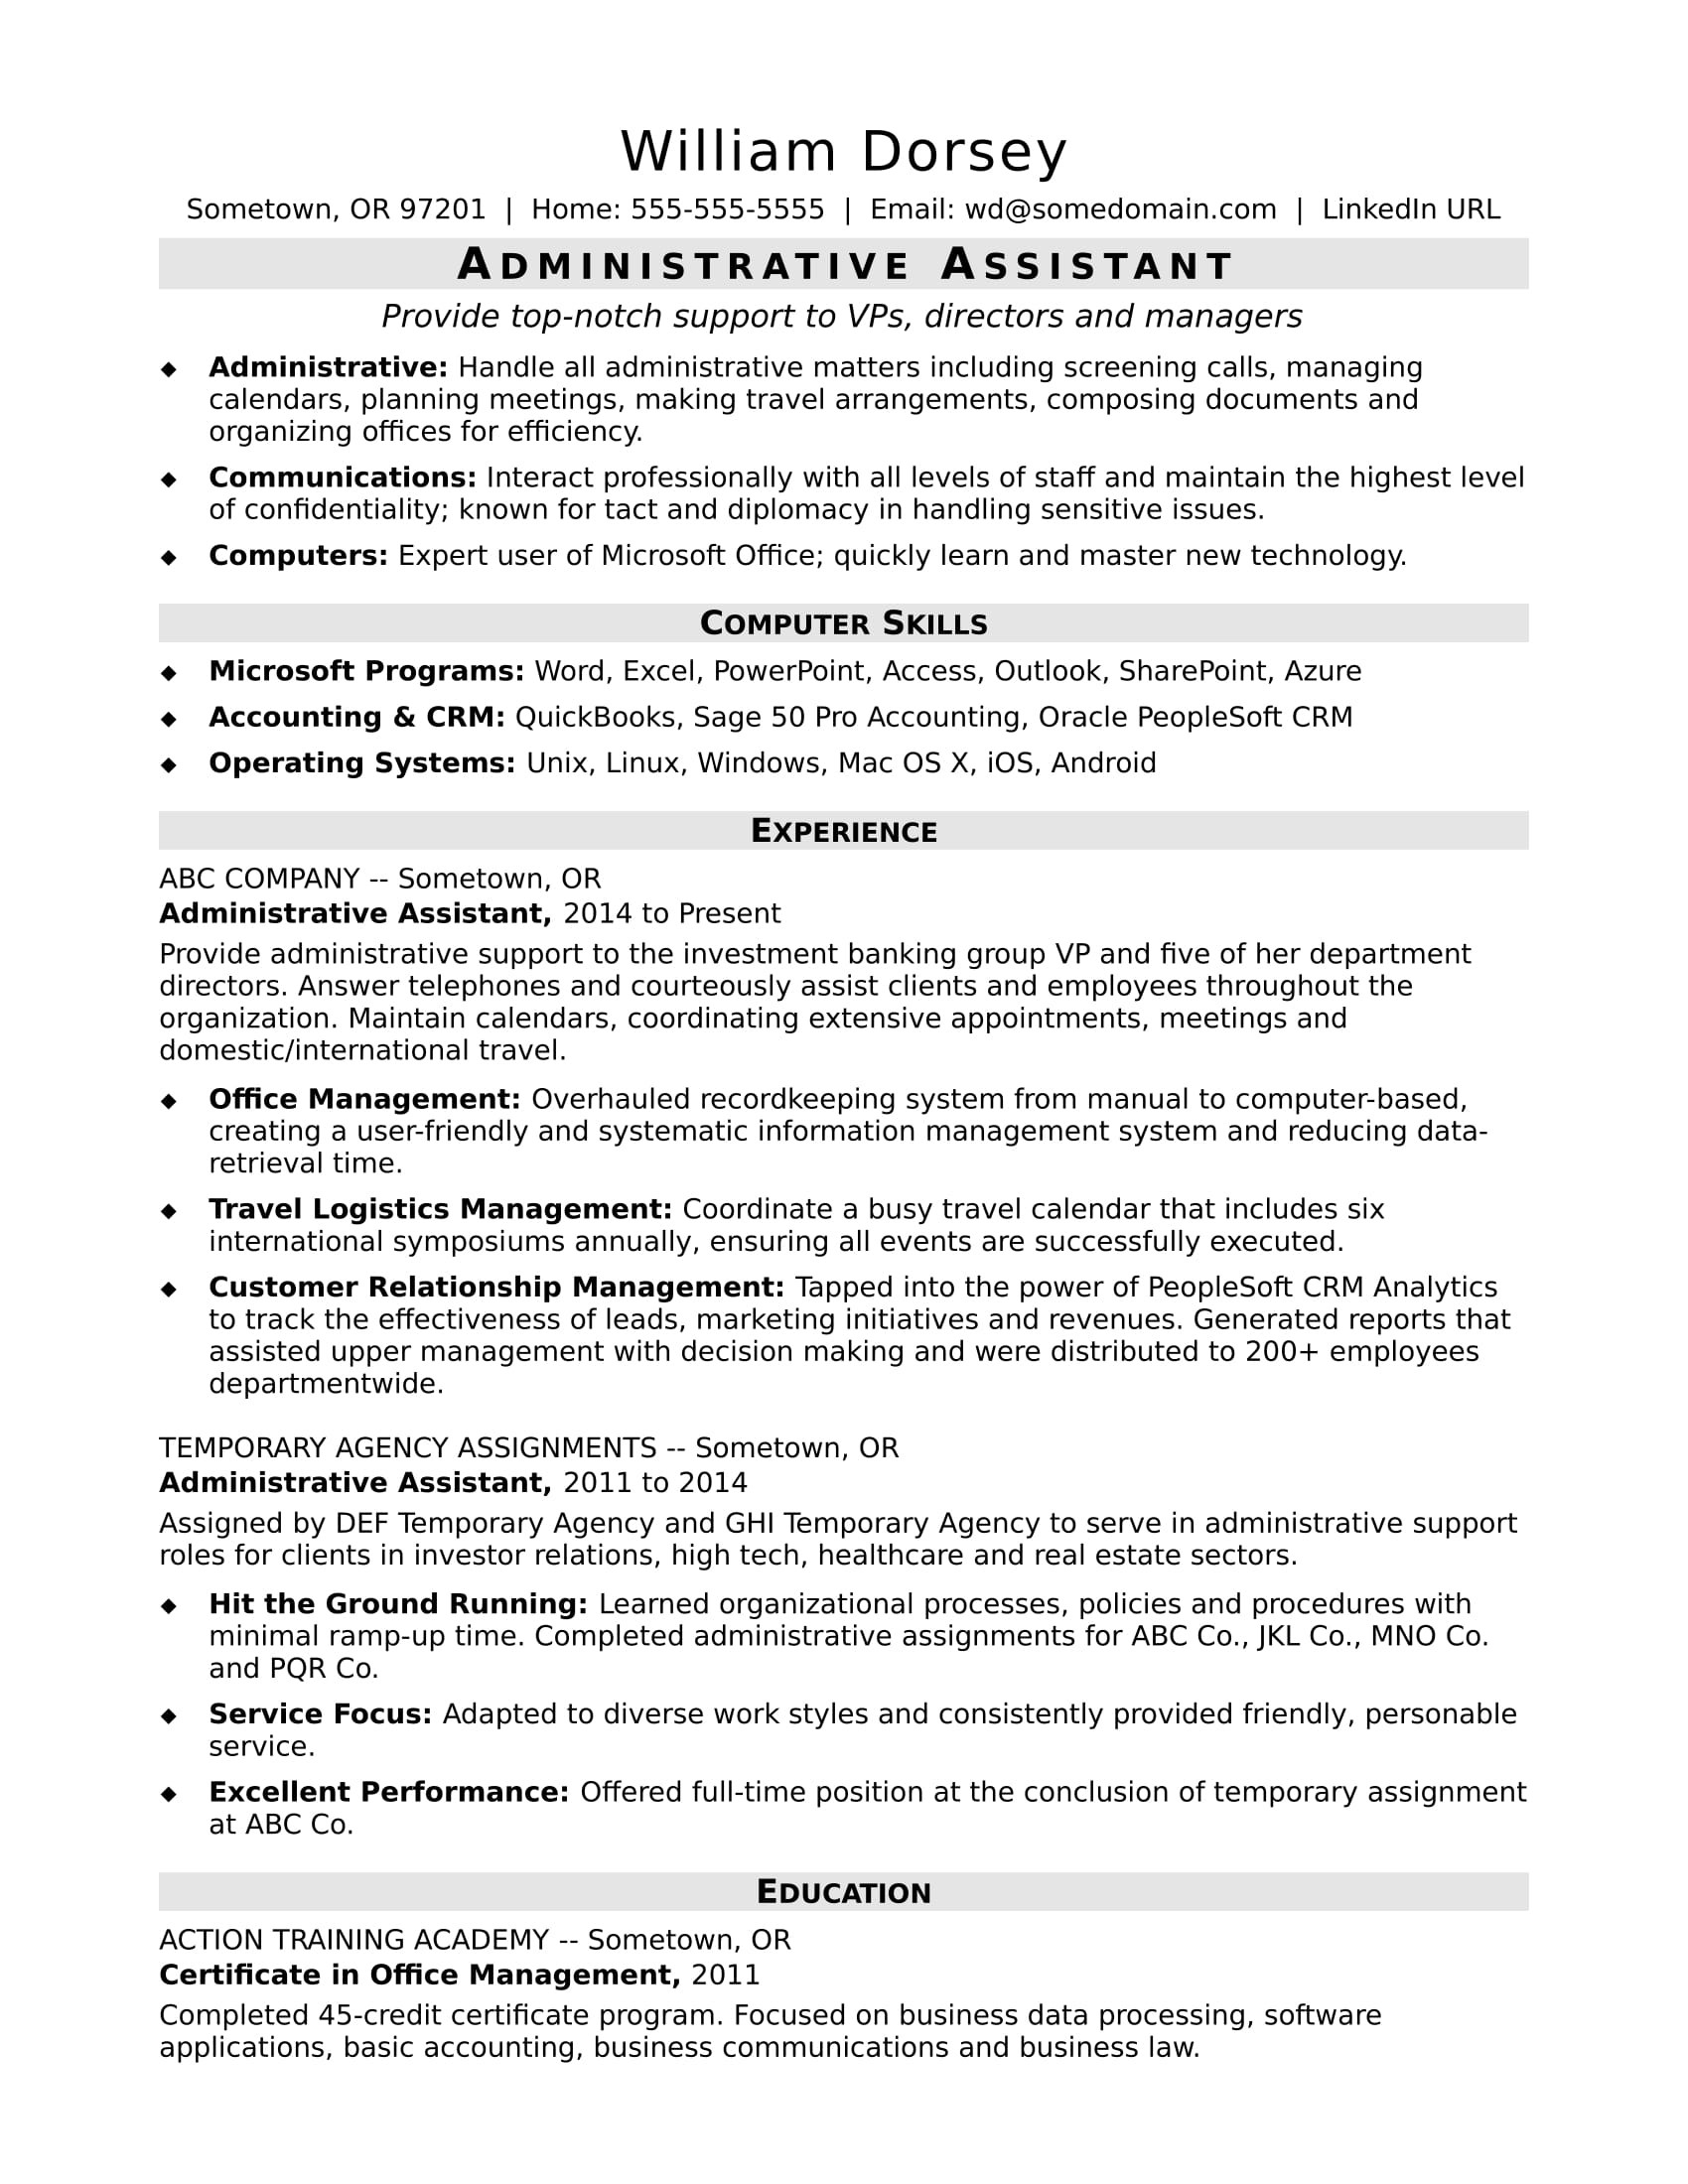 Midlevel Administrative Assistant Resume Sample Monster.com